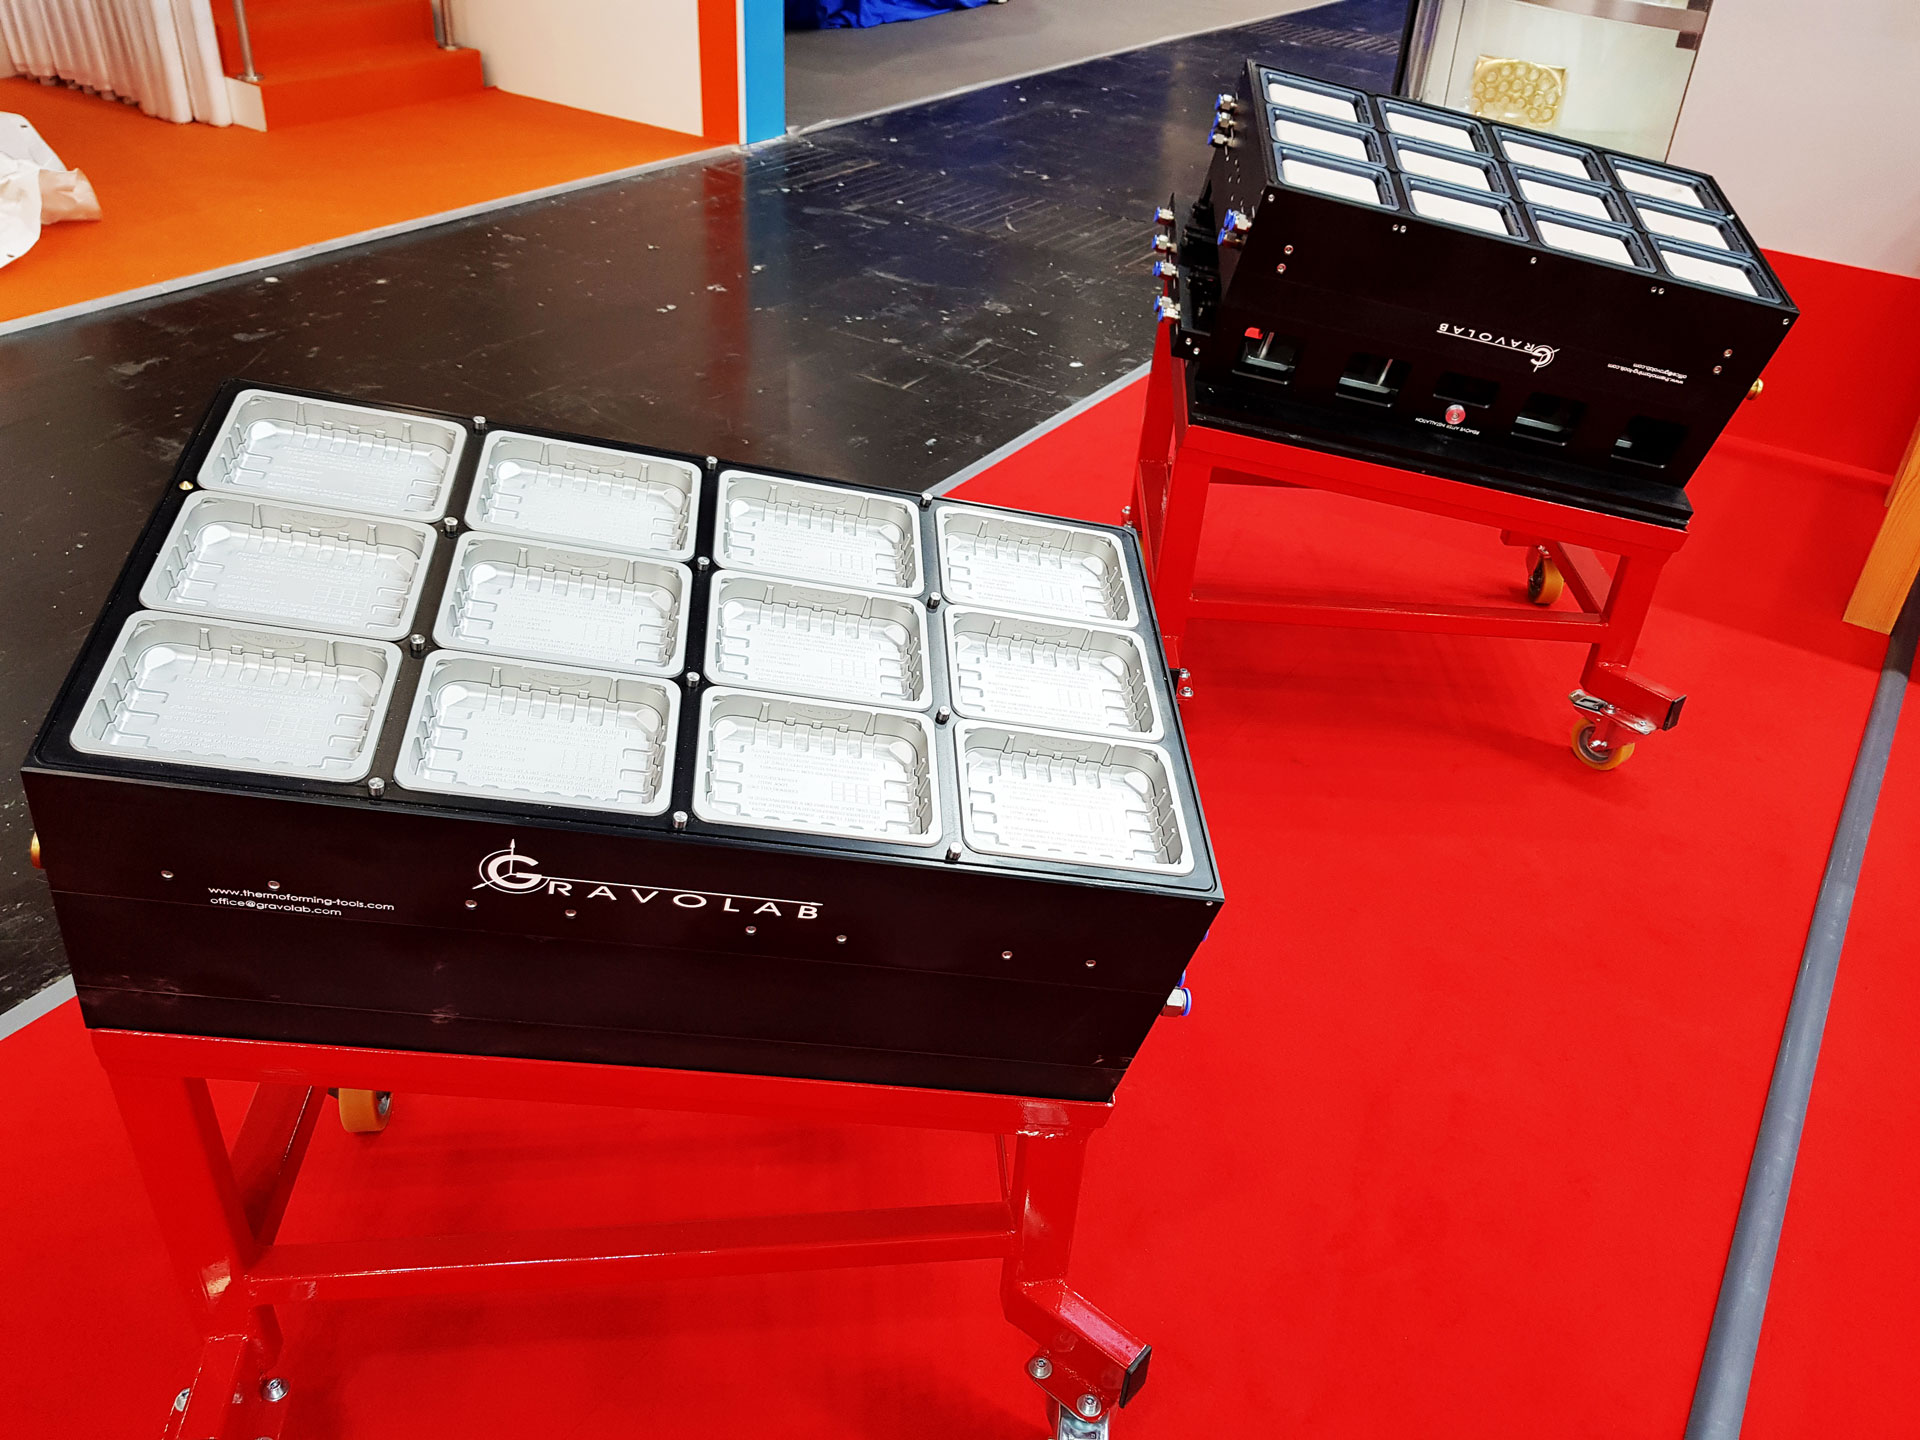 gravolab-efficient-thermoforming-tooling-equipment-expo